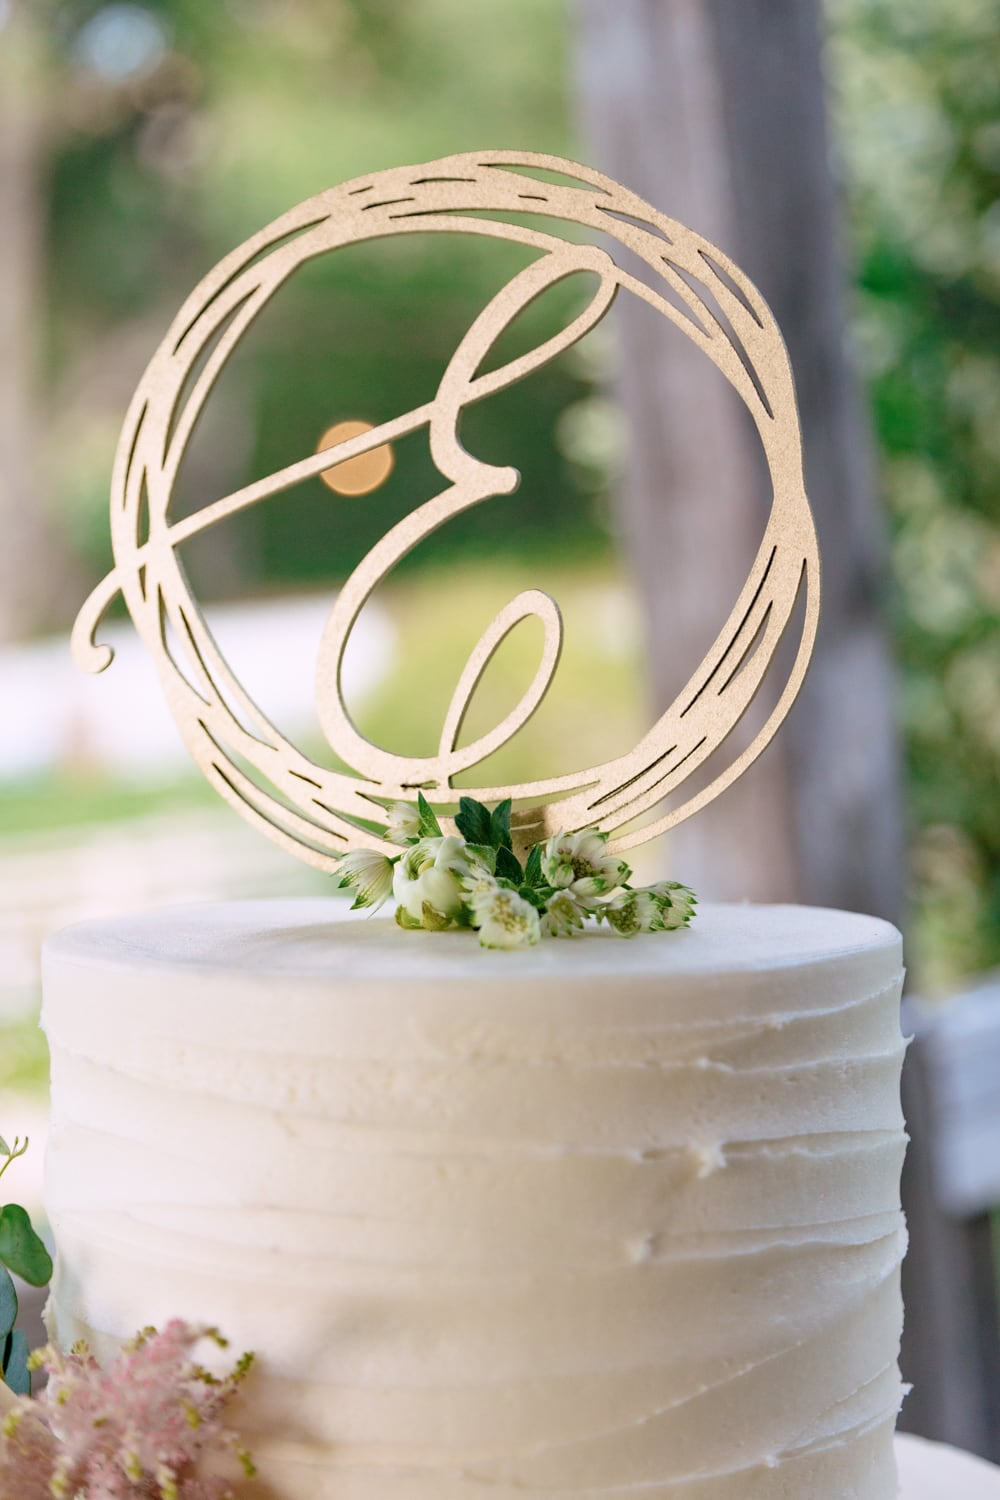 Wedding cake topper at The Stone House in Temecula, CA